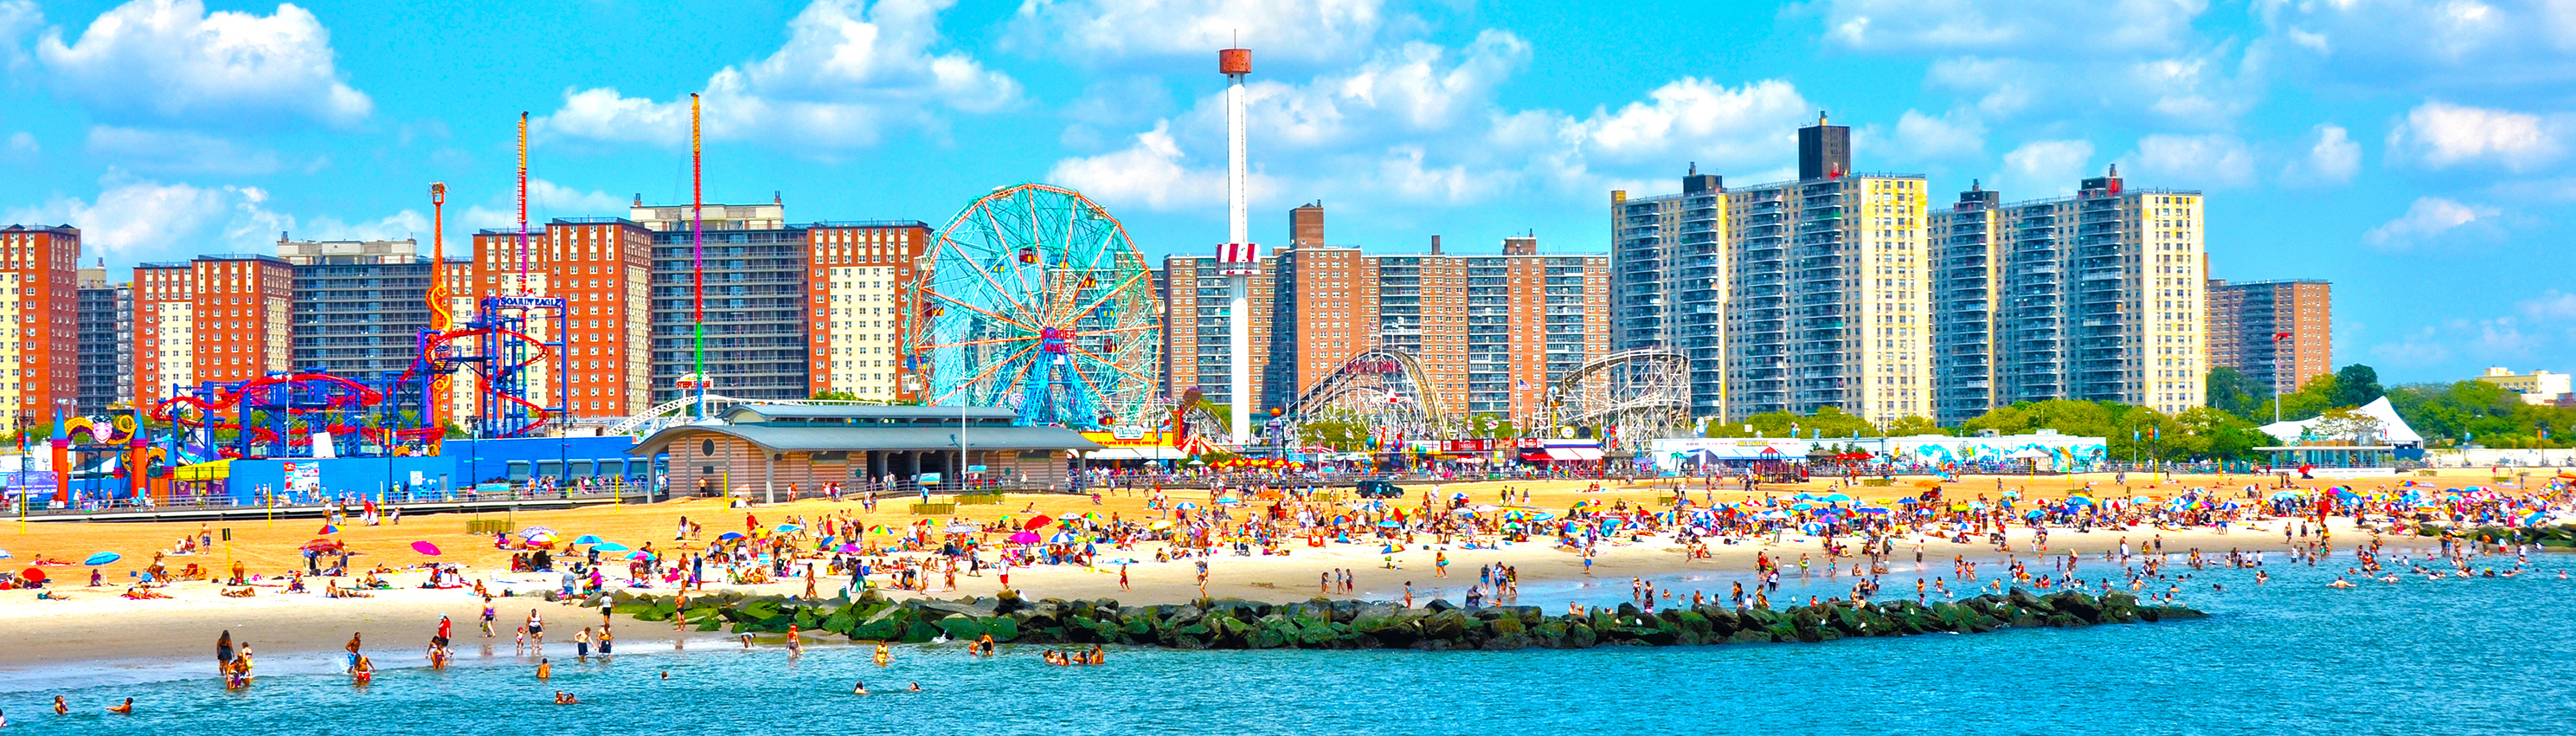 Parc d'attraction - Coney Island